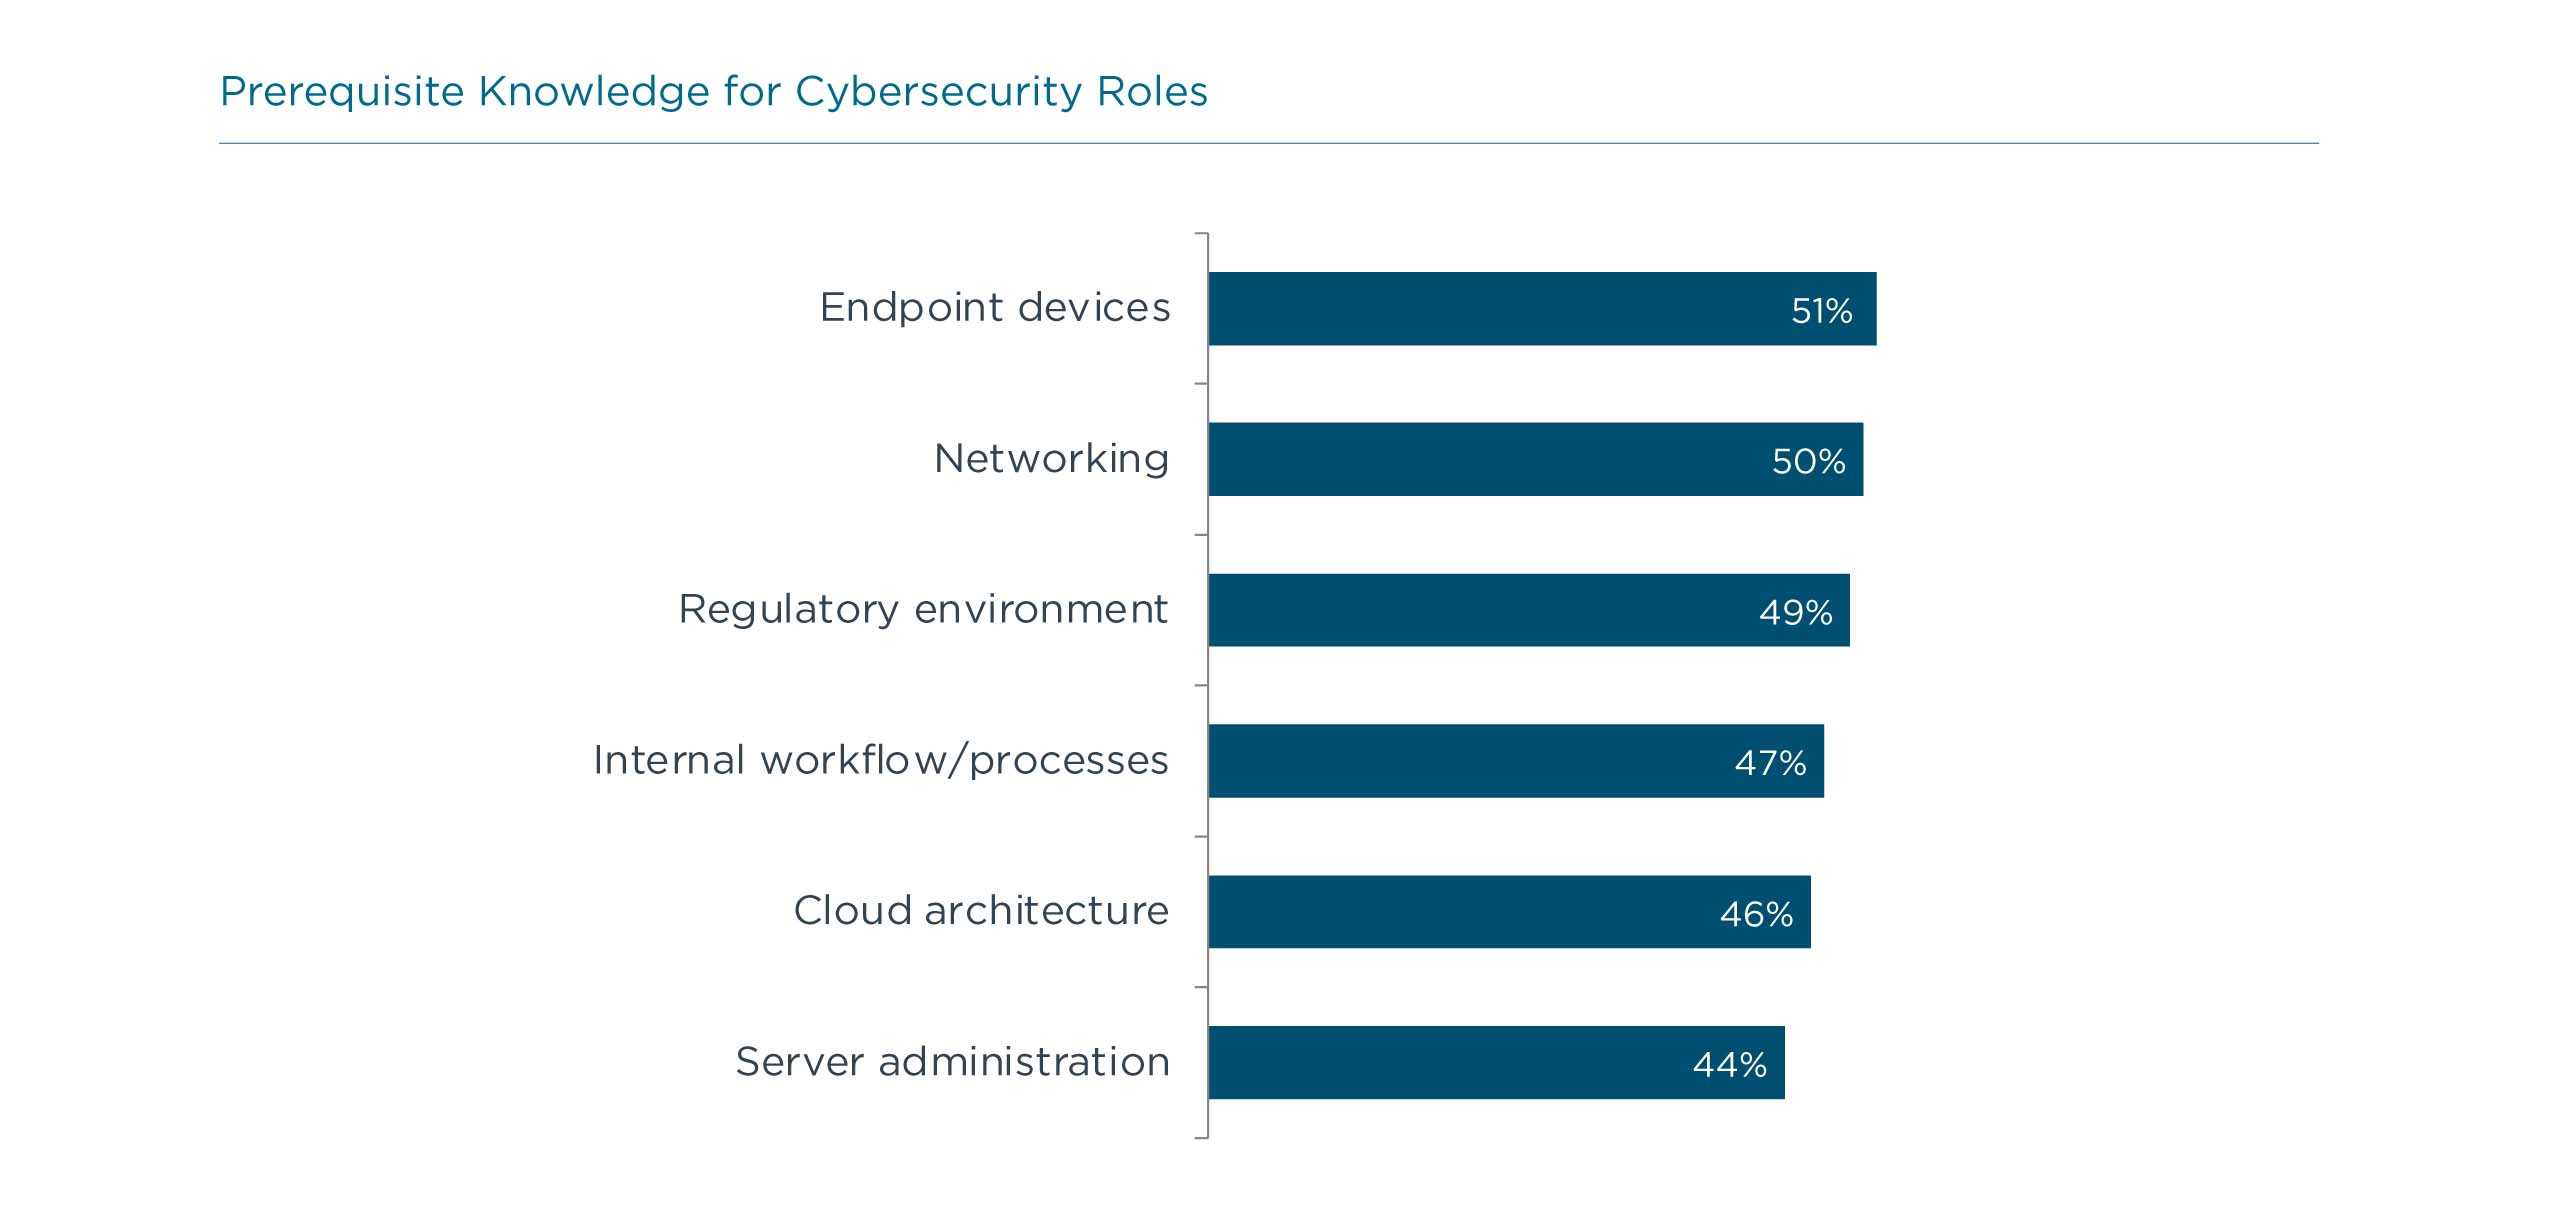 Prerequisite Knowledge for Cybersecurity Roles